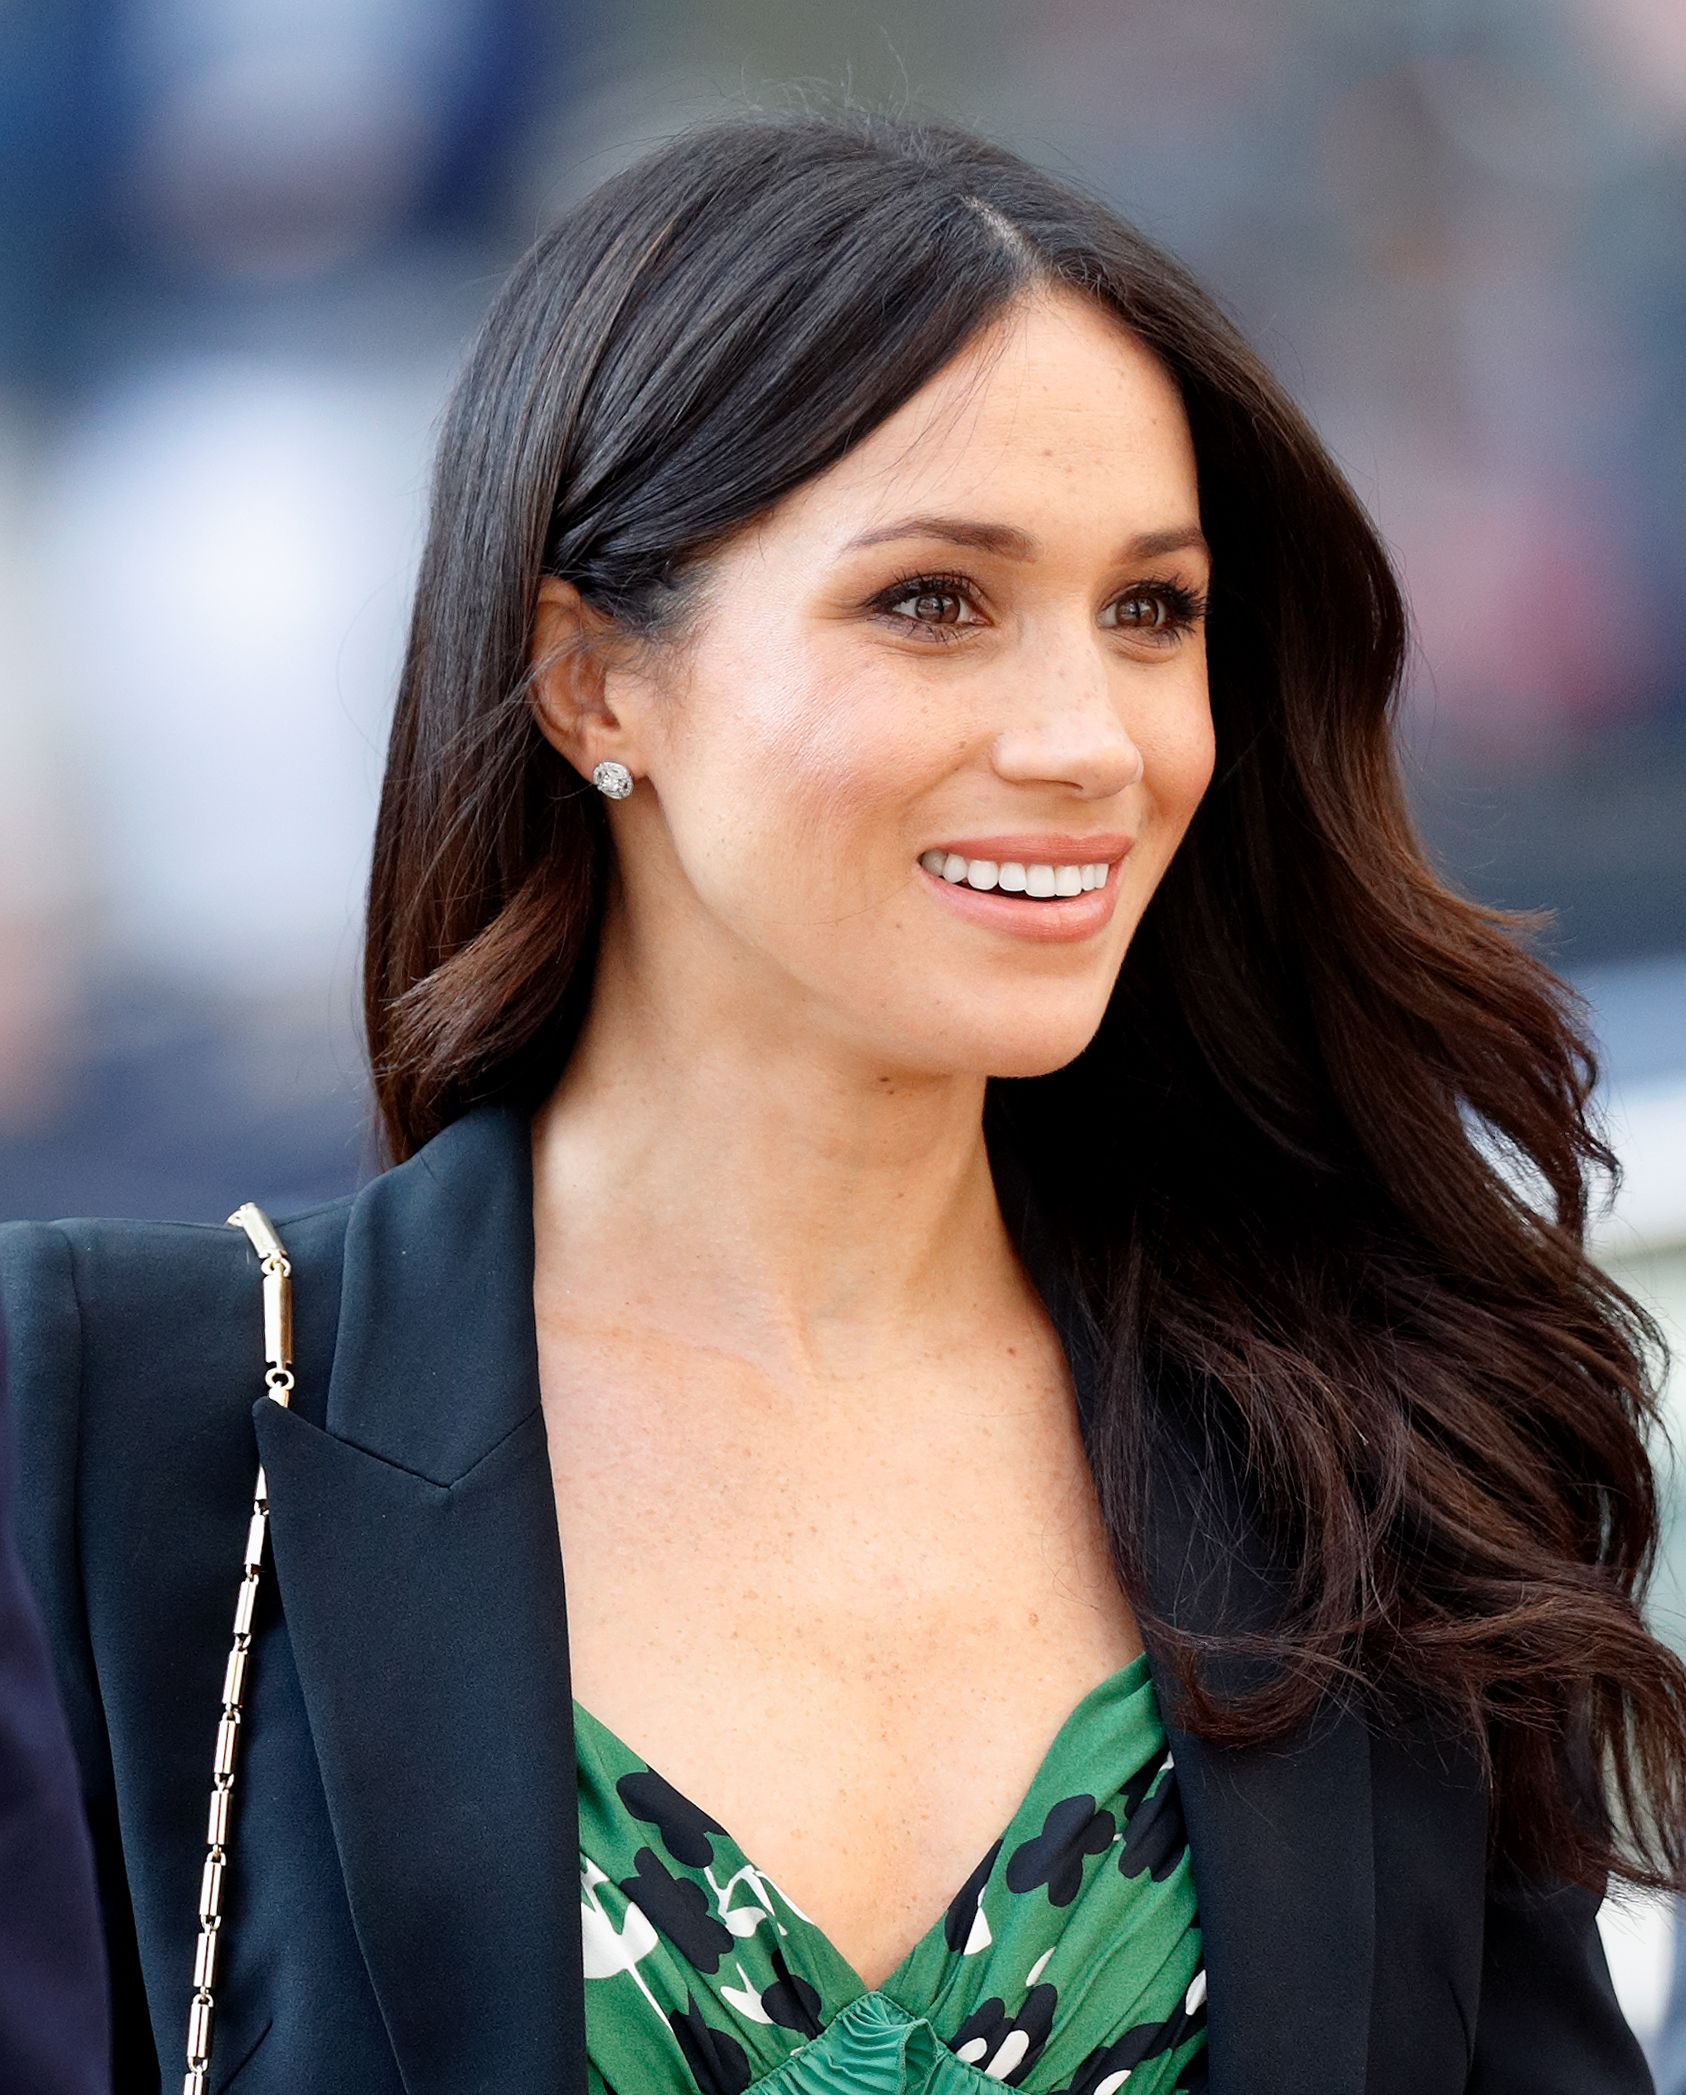 Meghan Markle Makes Going Incognito in Canada Look Incredibly Chic